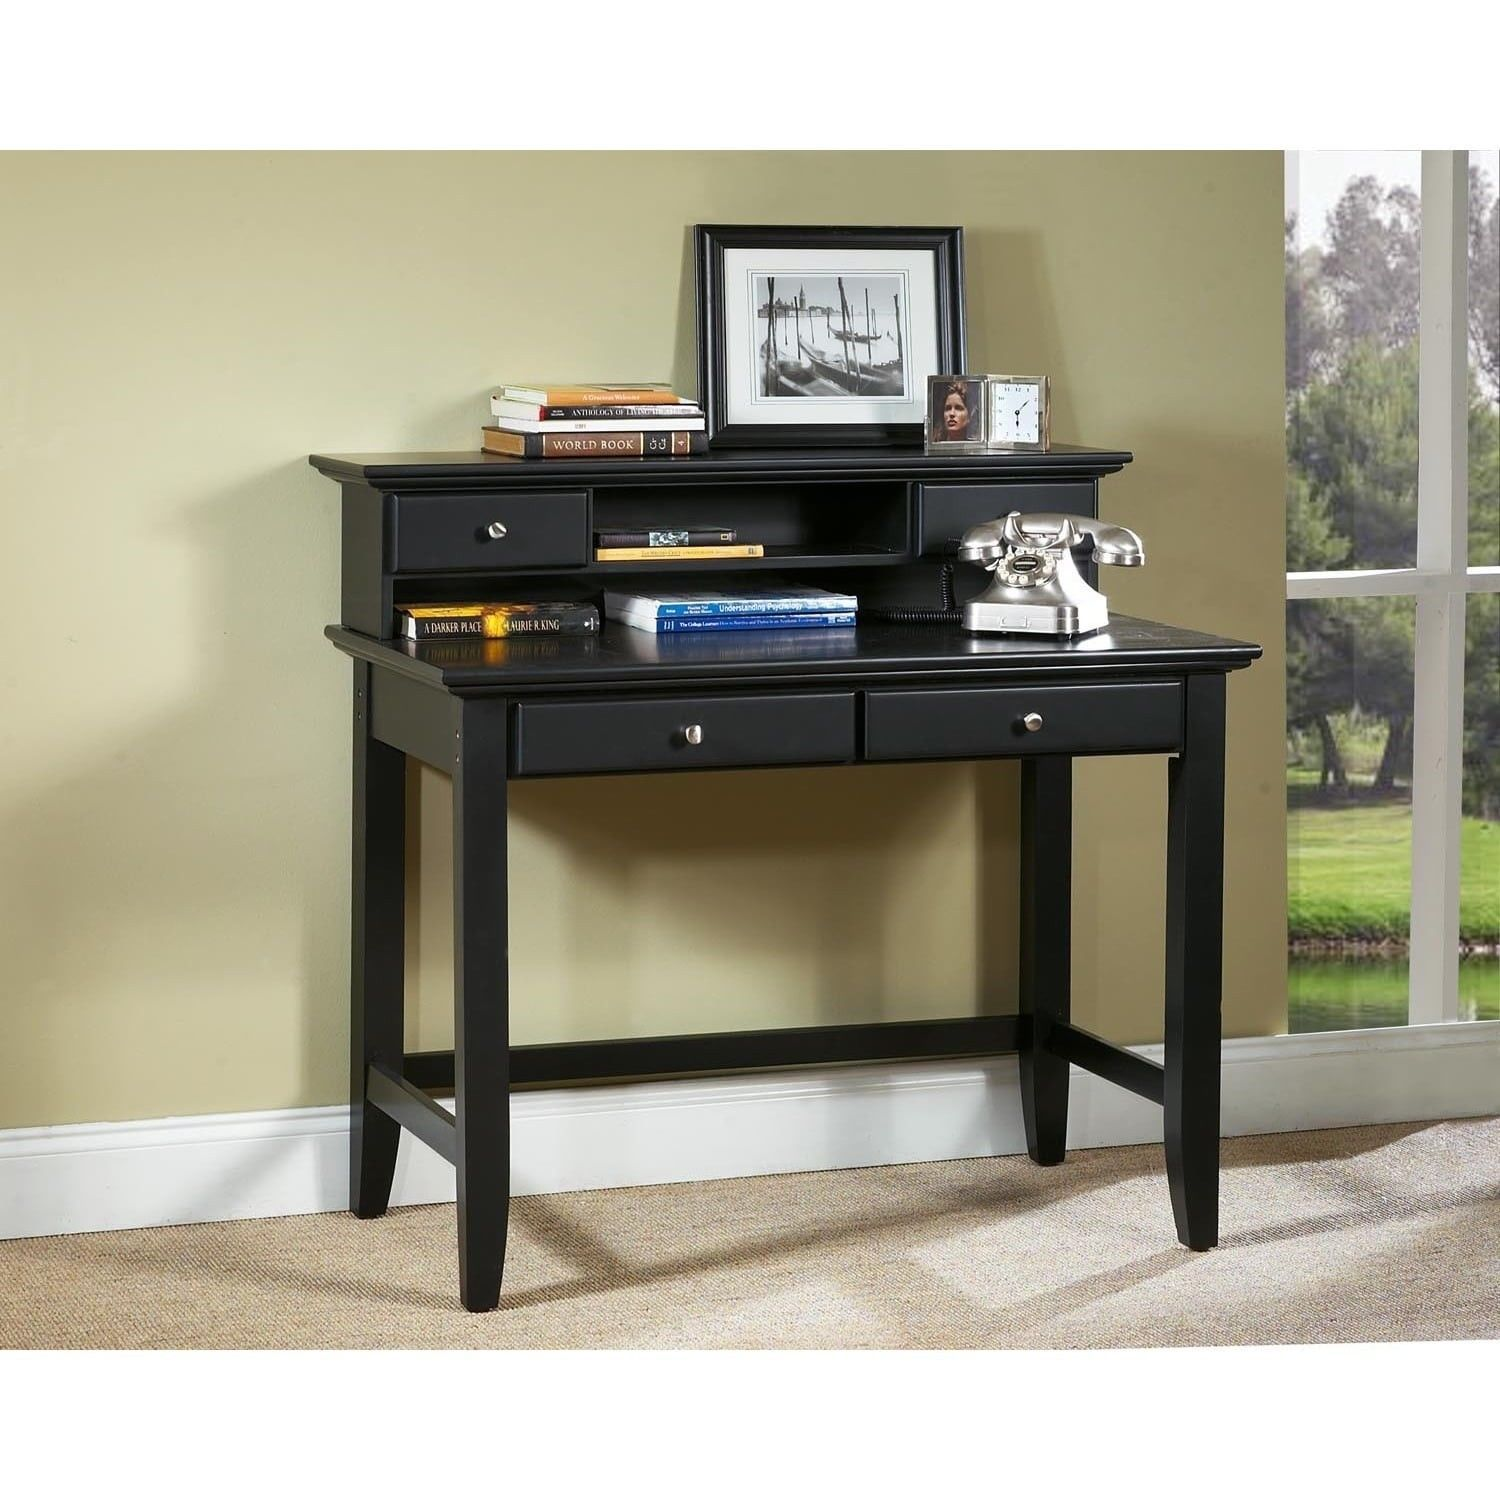 mean cheap desks originality computer black desk white most with home hutch spaces office modern for small